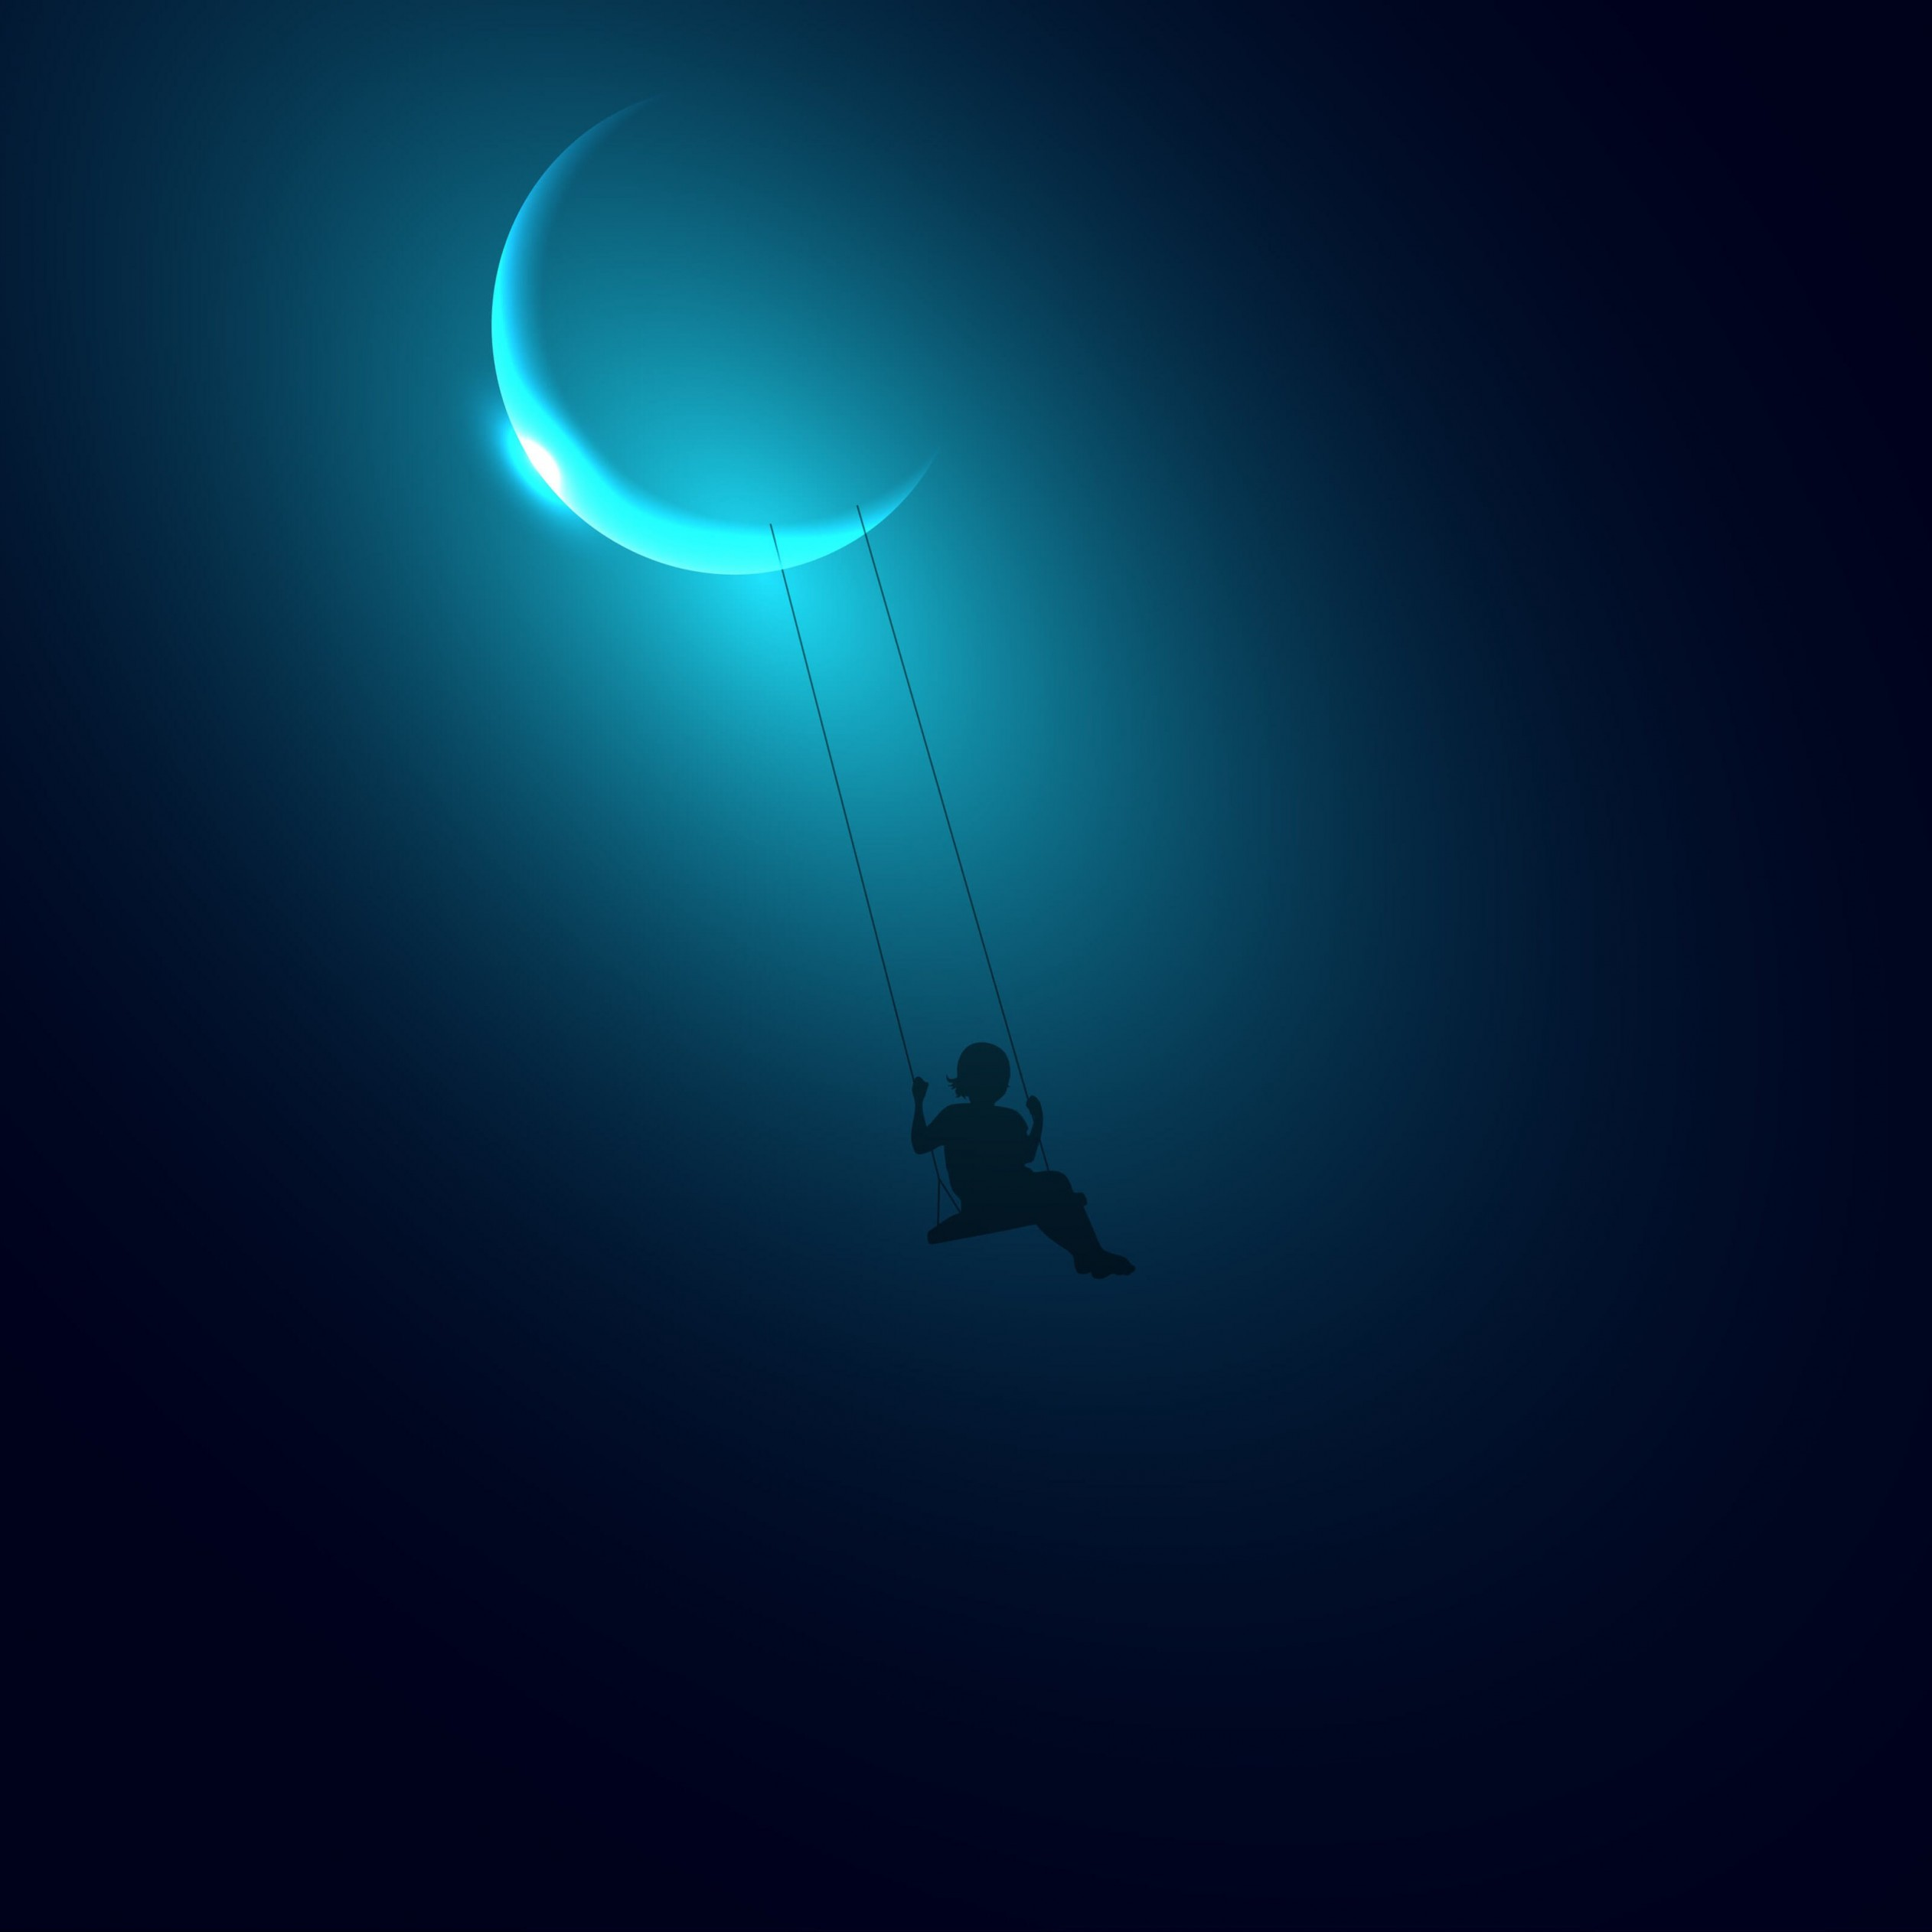 Little Girl Swinging on the Moon Wallpaper for Apple iPad 3